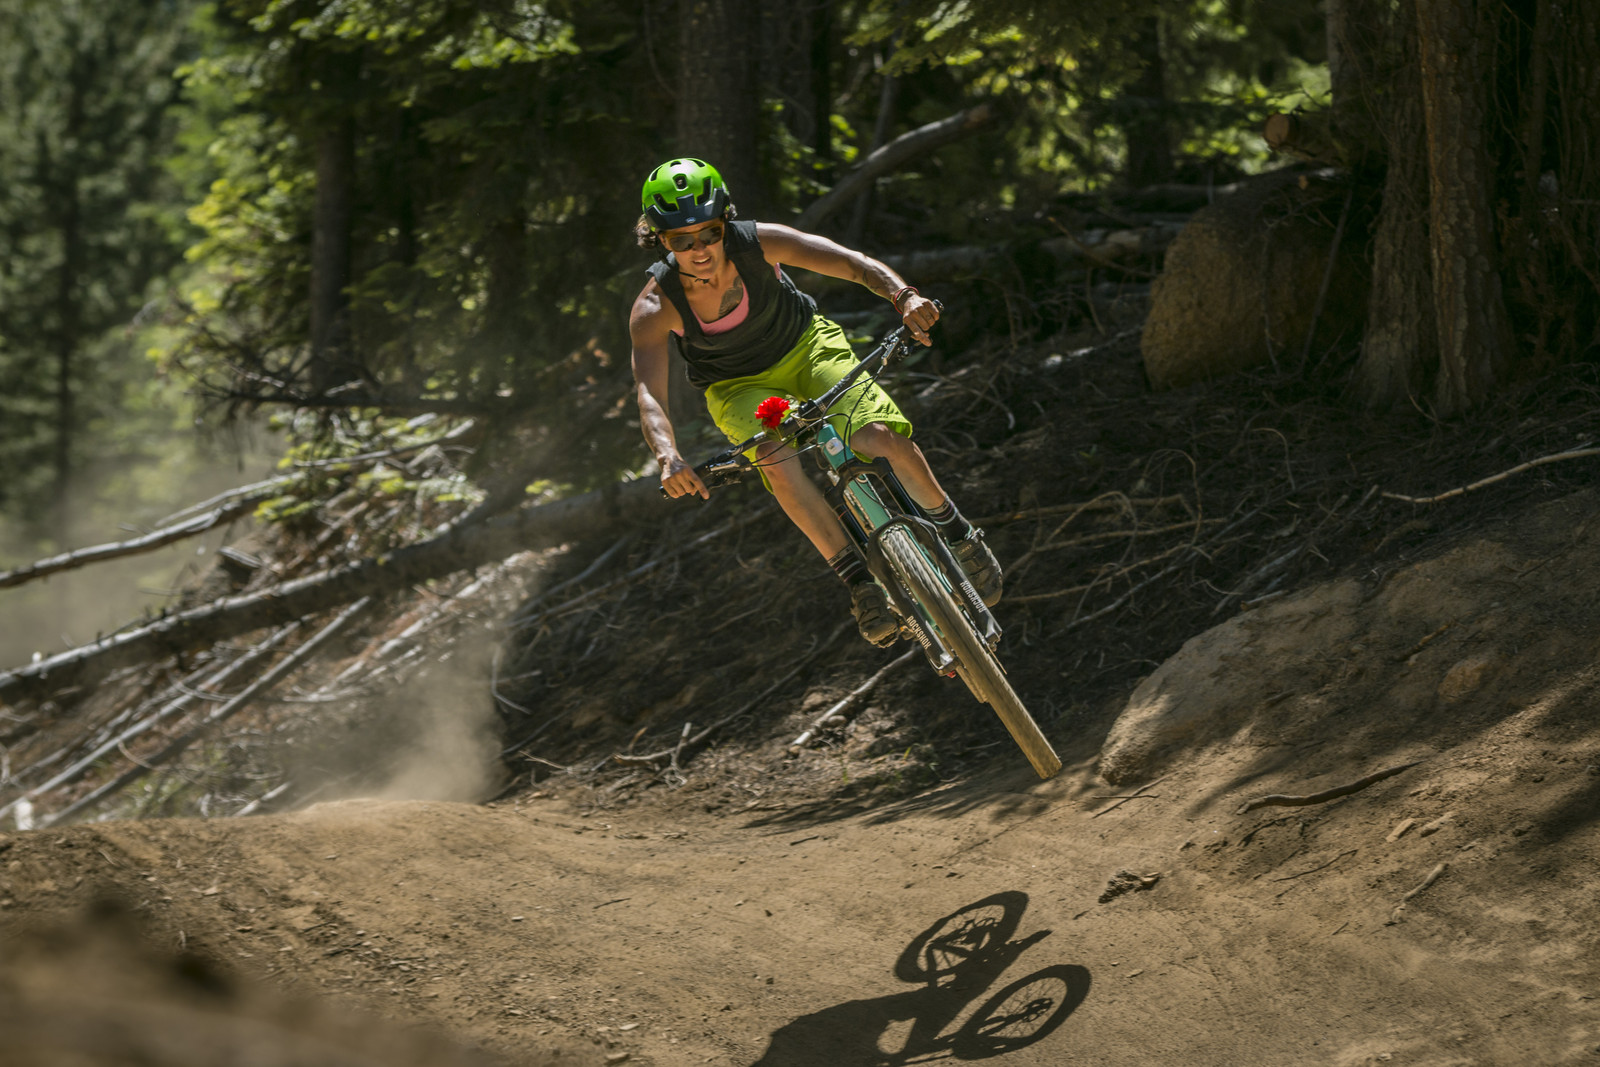 Race Report: Oregon Enduro Series 2, Bend - Abby Hippely 1st Place